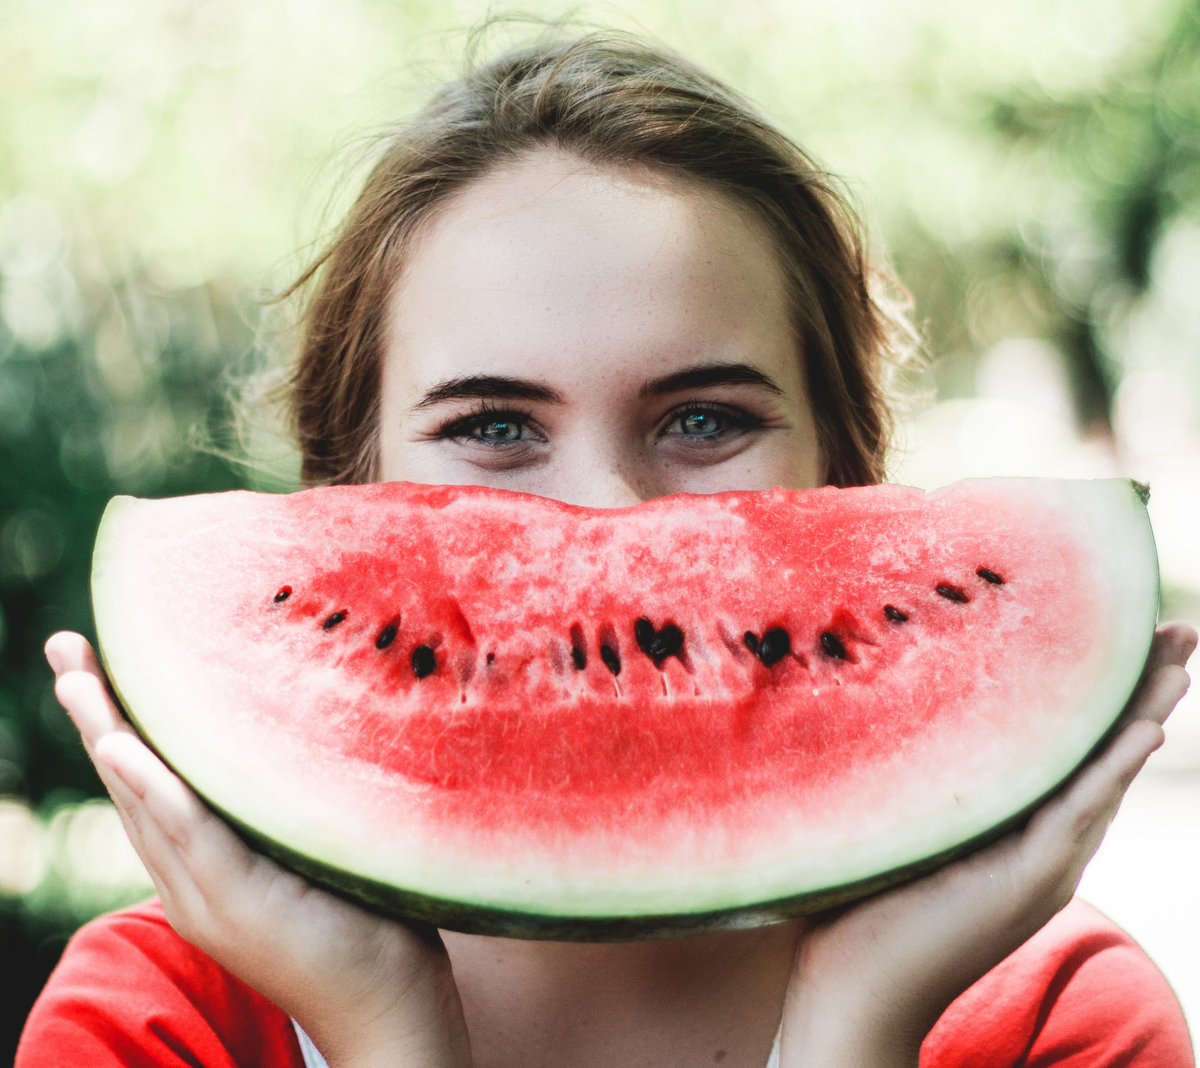 A woman holds up a huge watermelon wedge in front of her face.